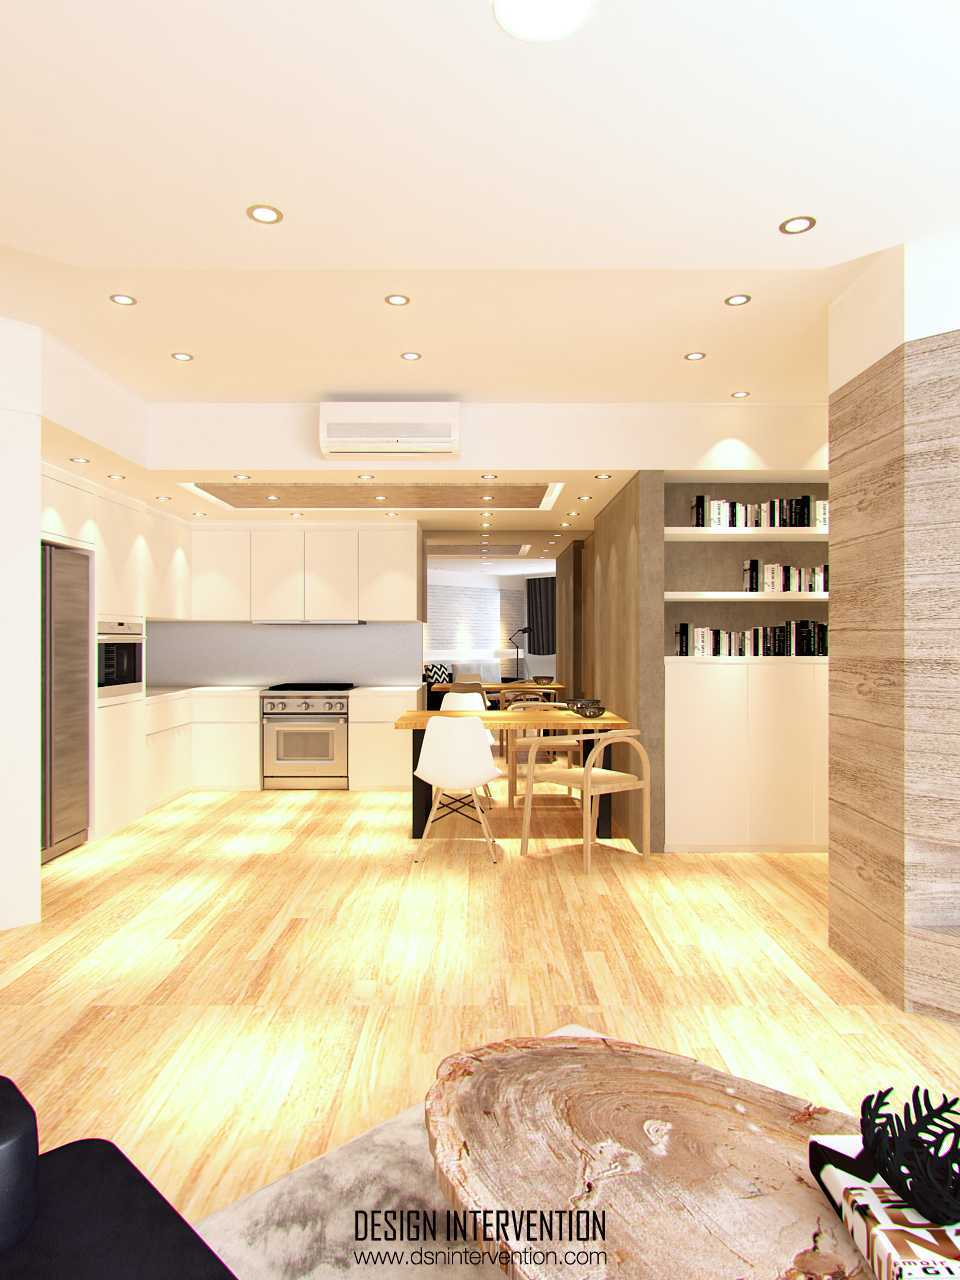 Dapur rumah mewah PK Apartment karya DESIGN INTERVENTION [Sumber: arsitag.com]